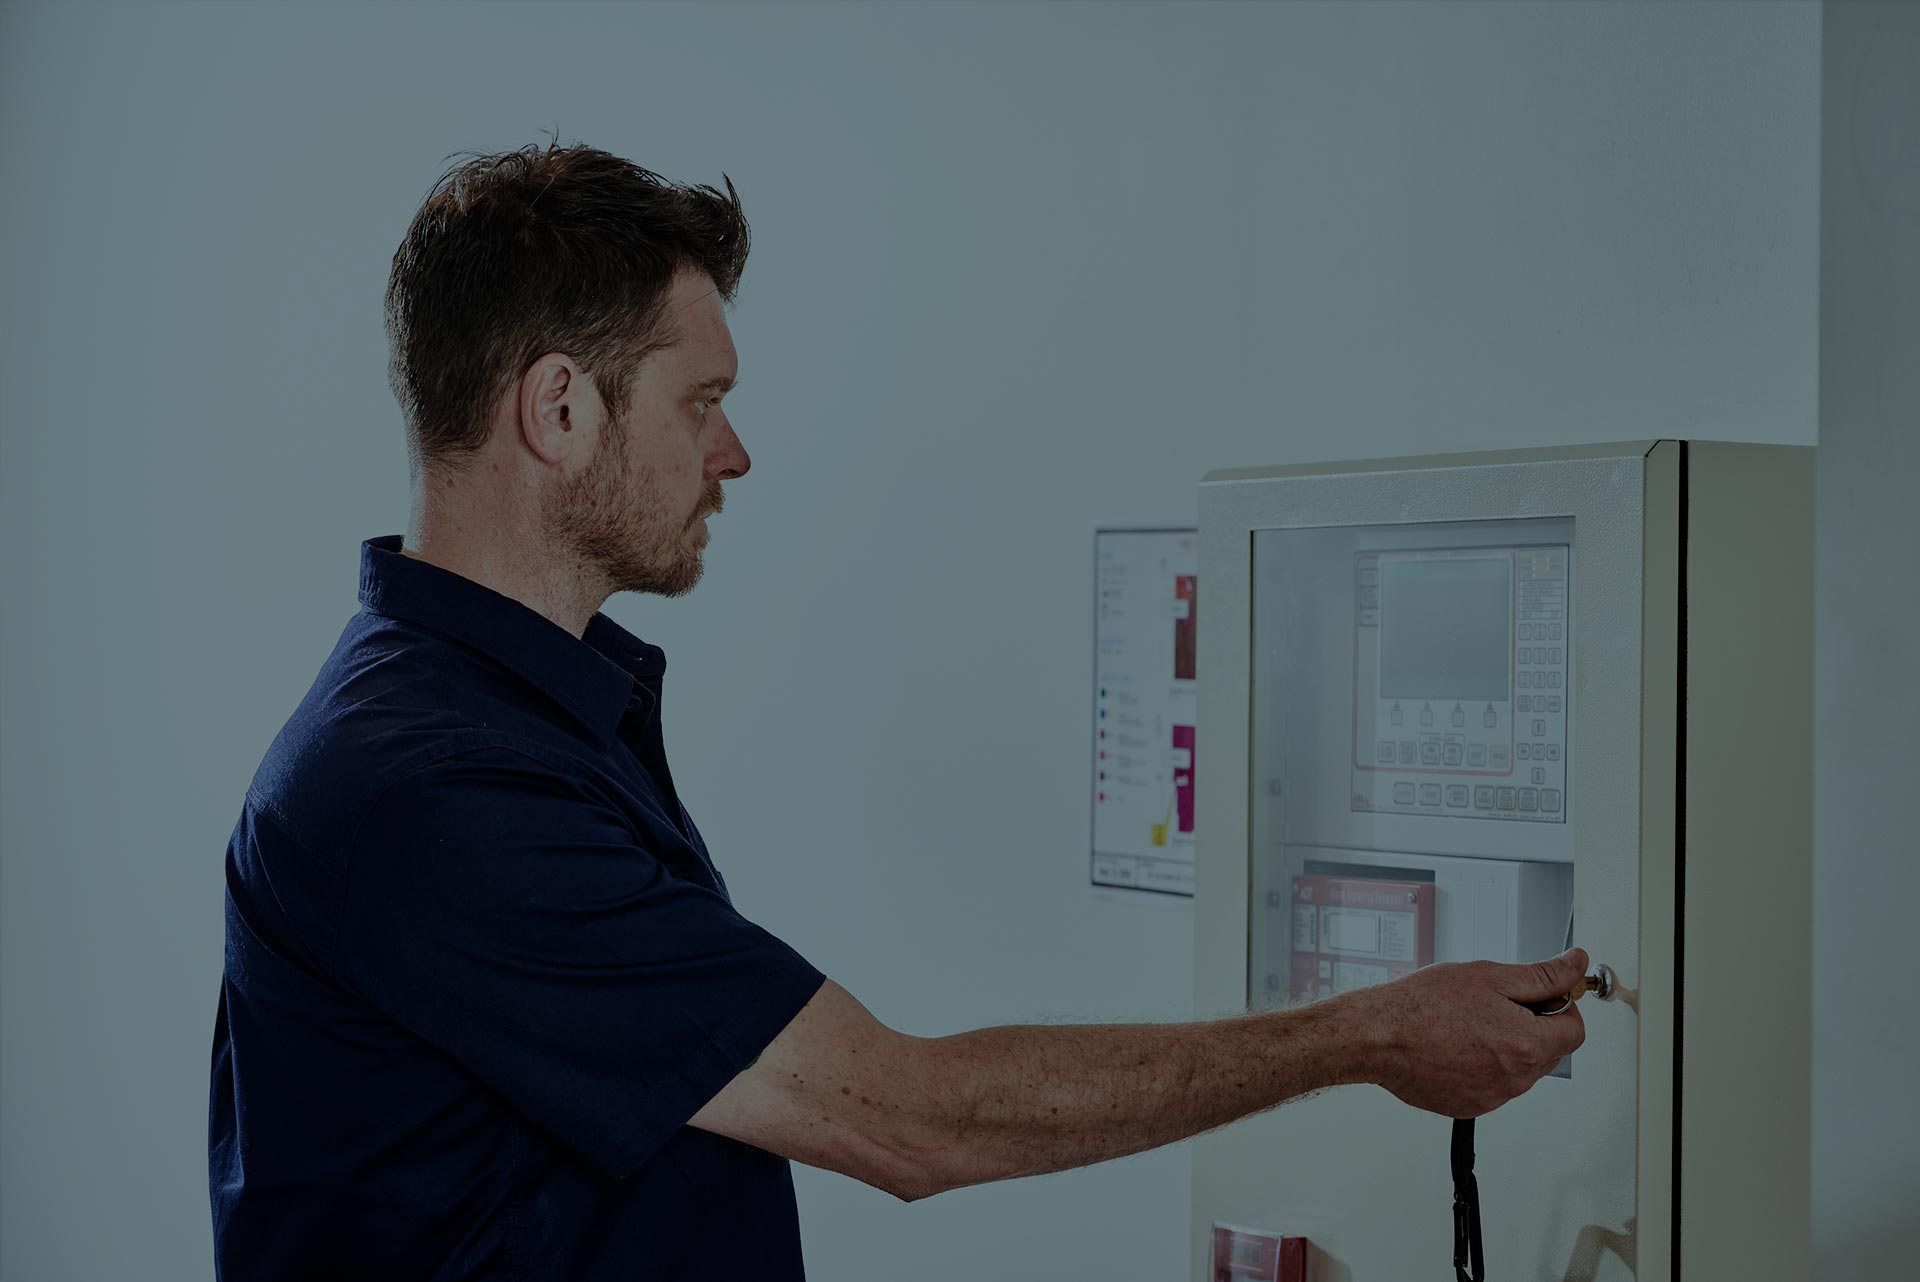 An Alexon employee closing and locking a fire systems control panel.